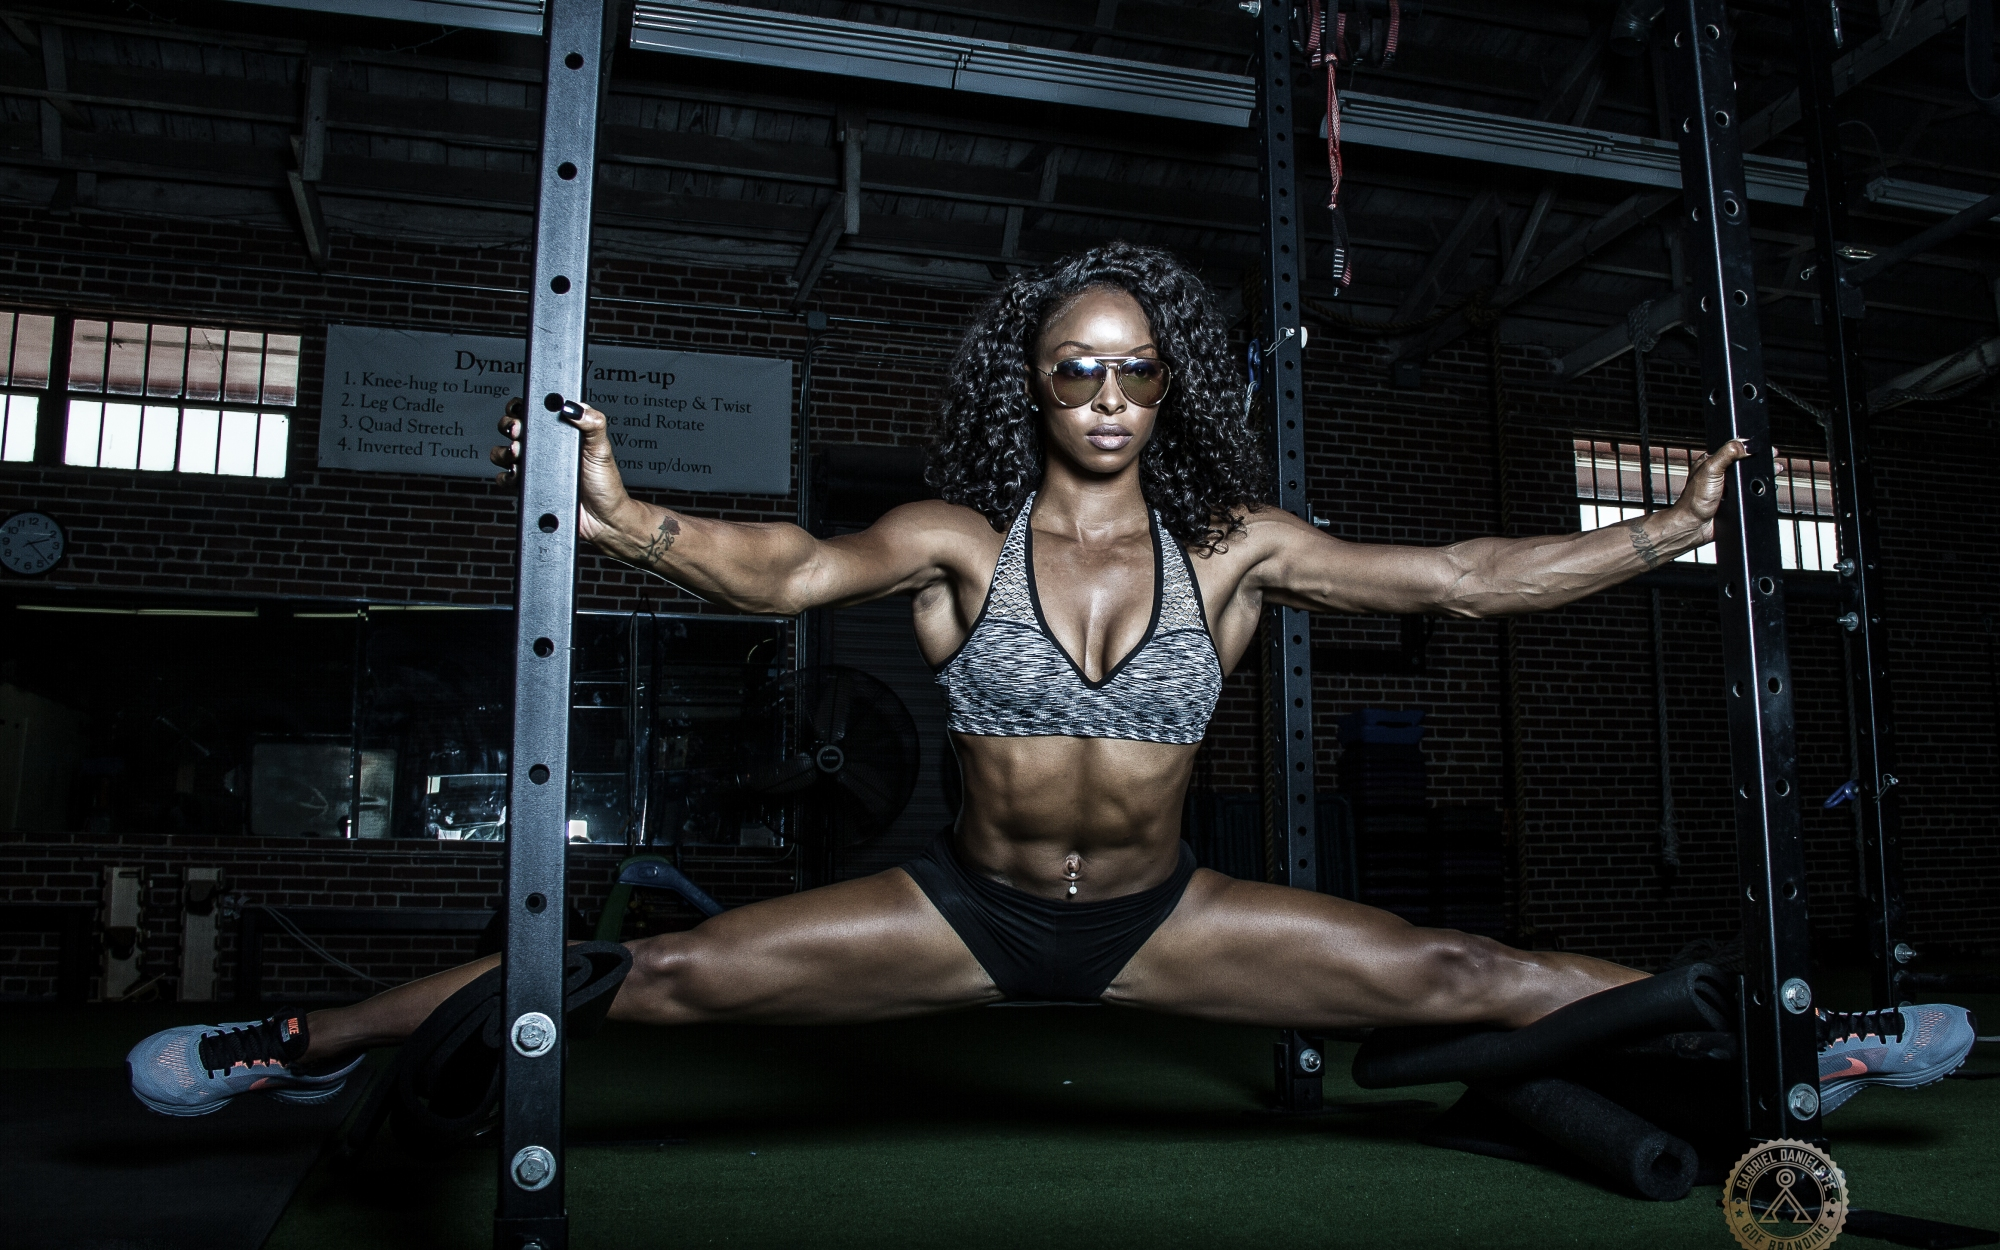 Client: Lakya Brookins Photographer: Artist Ari X Location: Columbia South Carolina Year: 2015 Theme: Cross-fit, Fitness Inspired All artwork on Opulence Imageswebsite (photos and texts) cannot be used or presented without the artist prior consent.